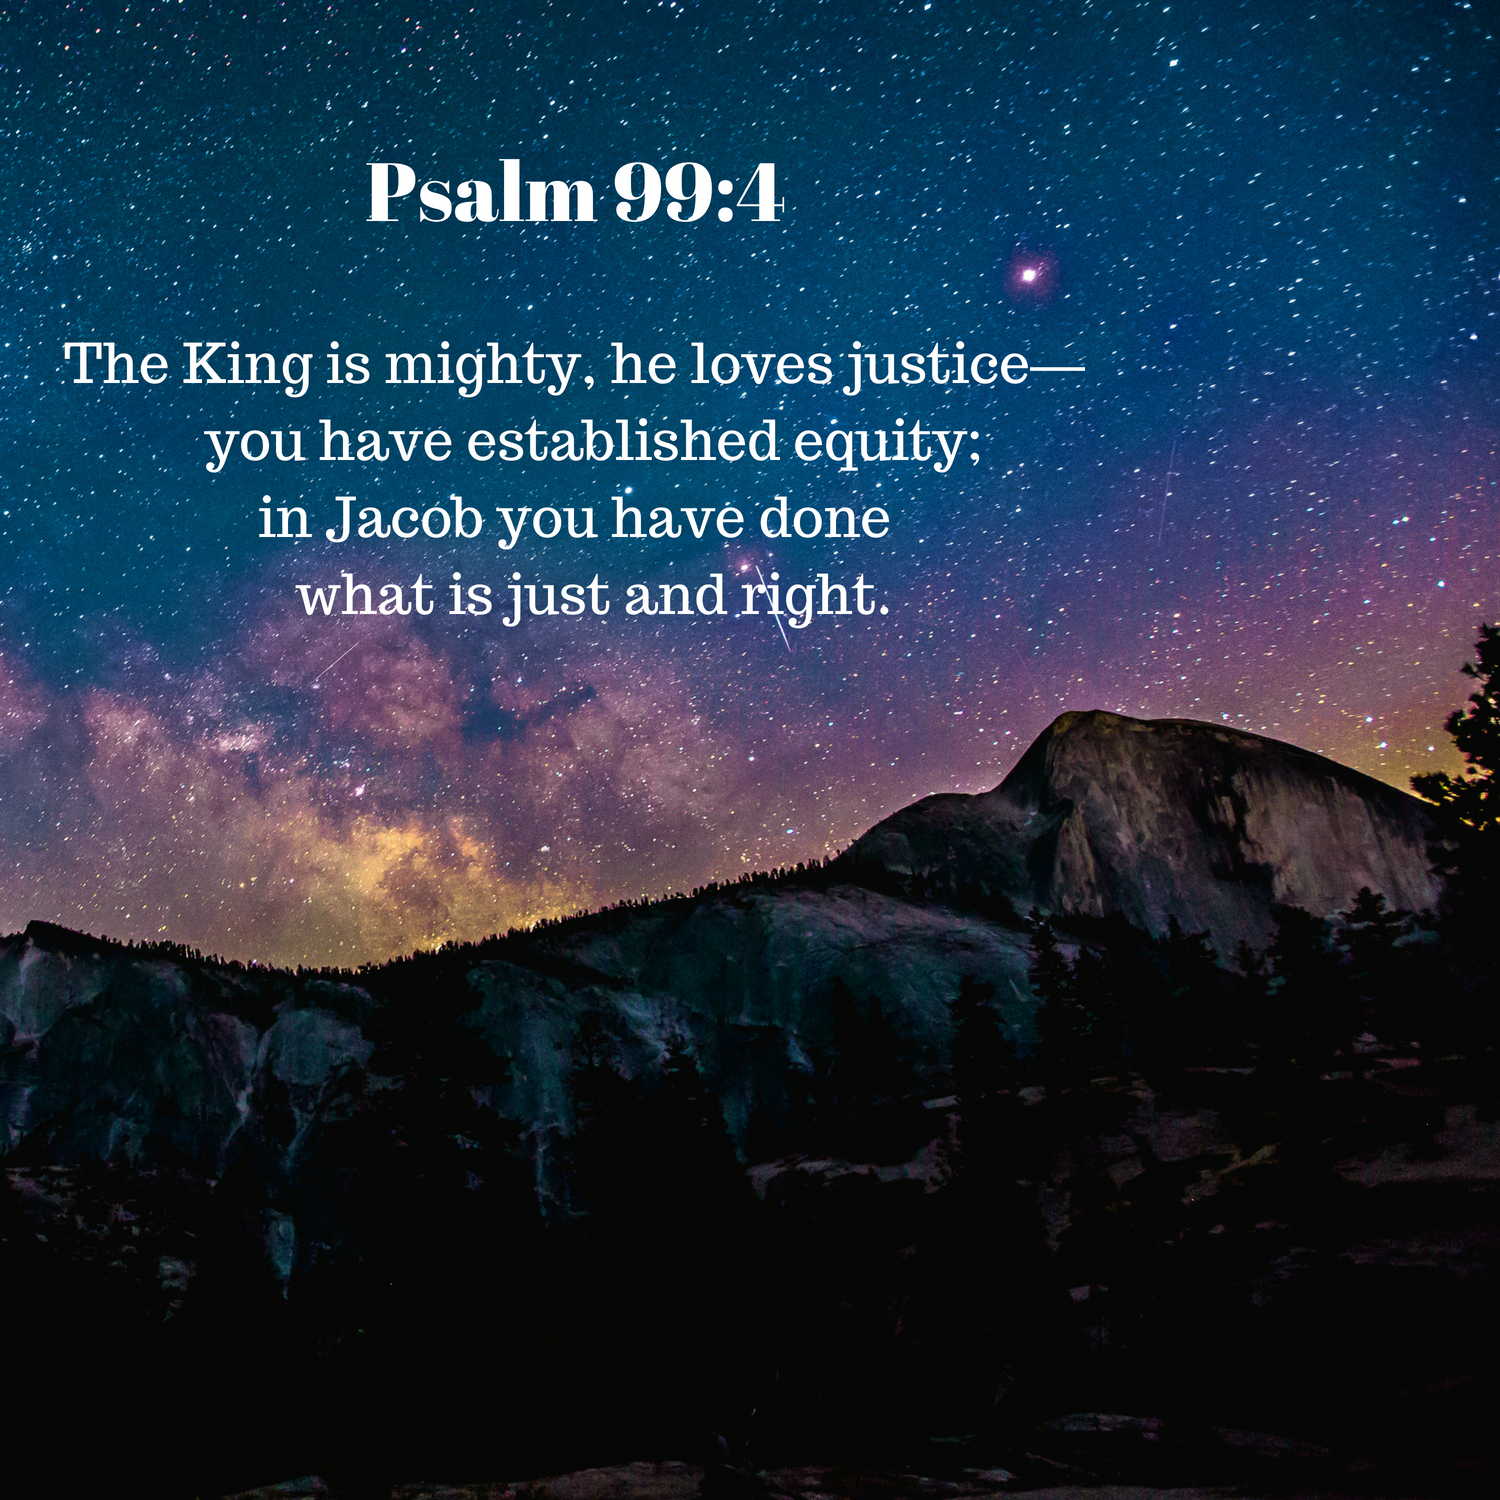 God's Reign from Heaven; His Justice on Earth